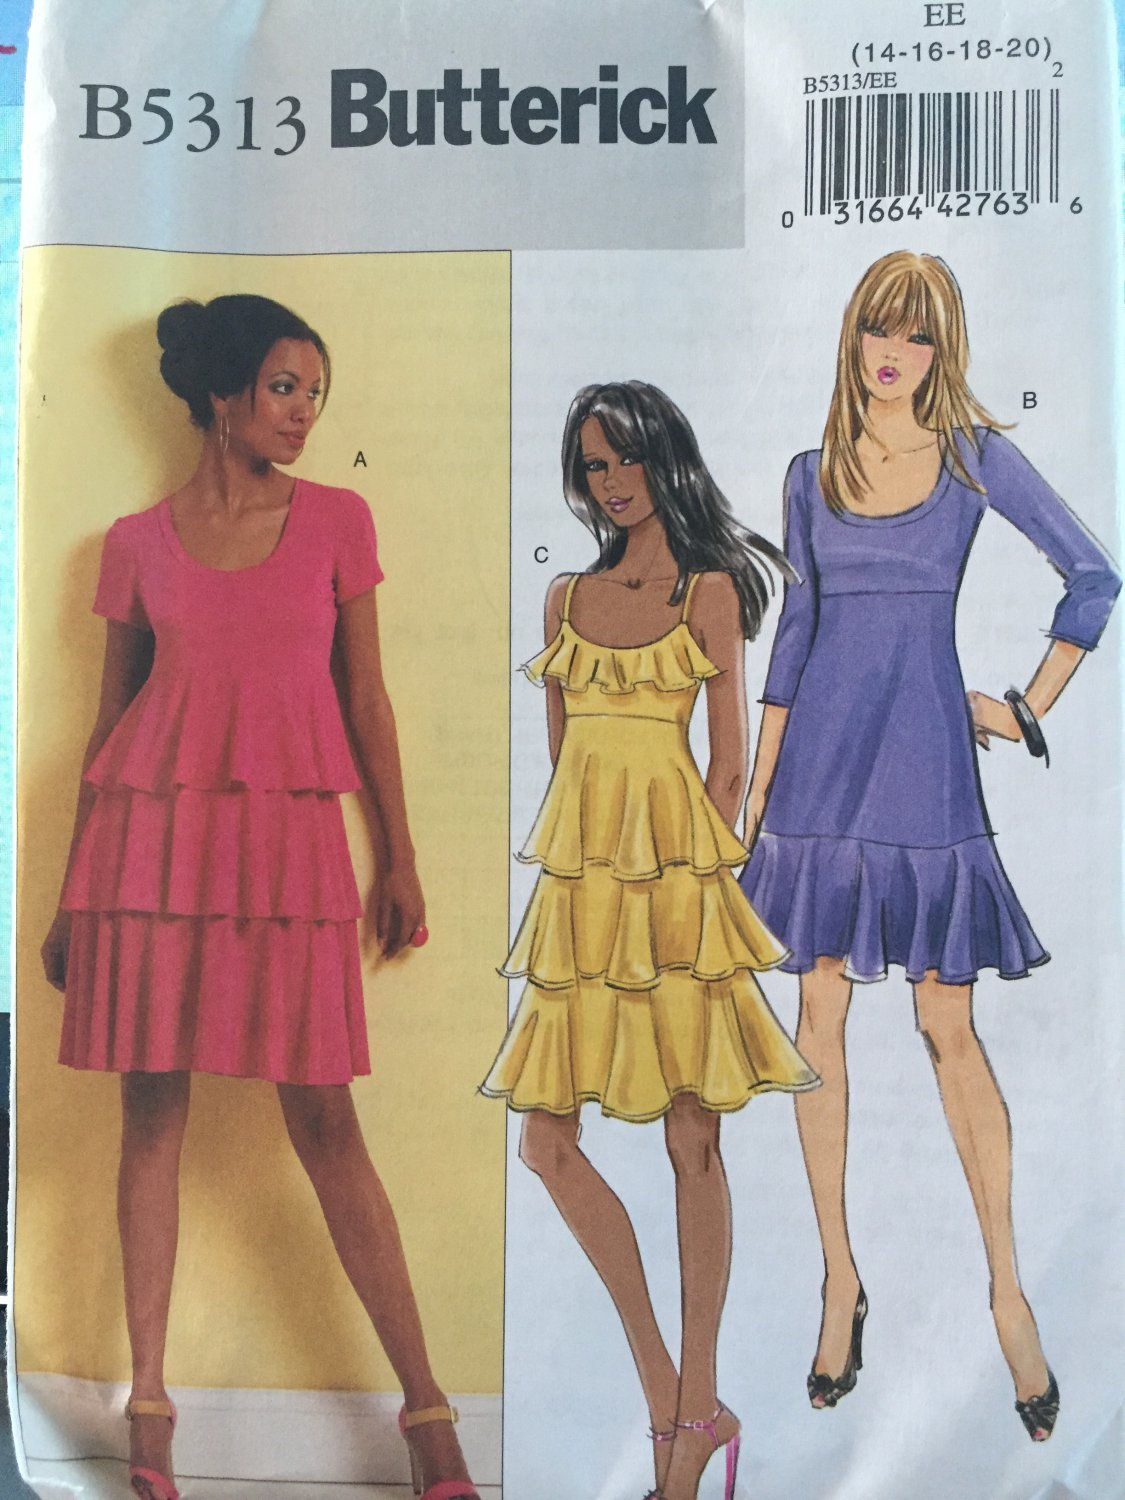 Butterick B5313 Tiered Party Dress sewing pattern 3 style variations Size 14 - 20